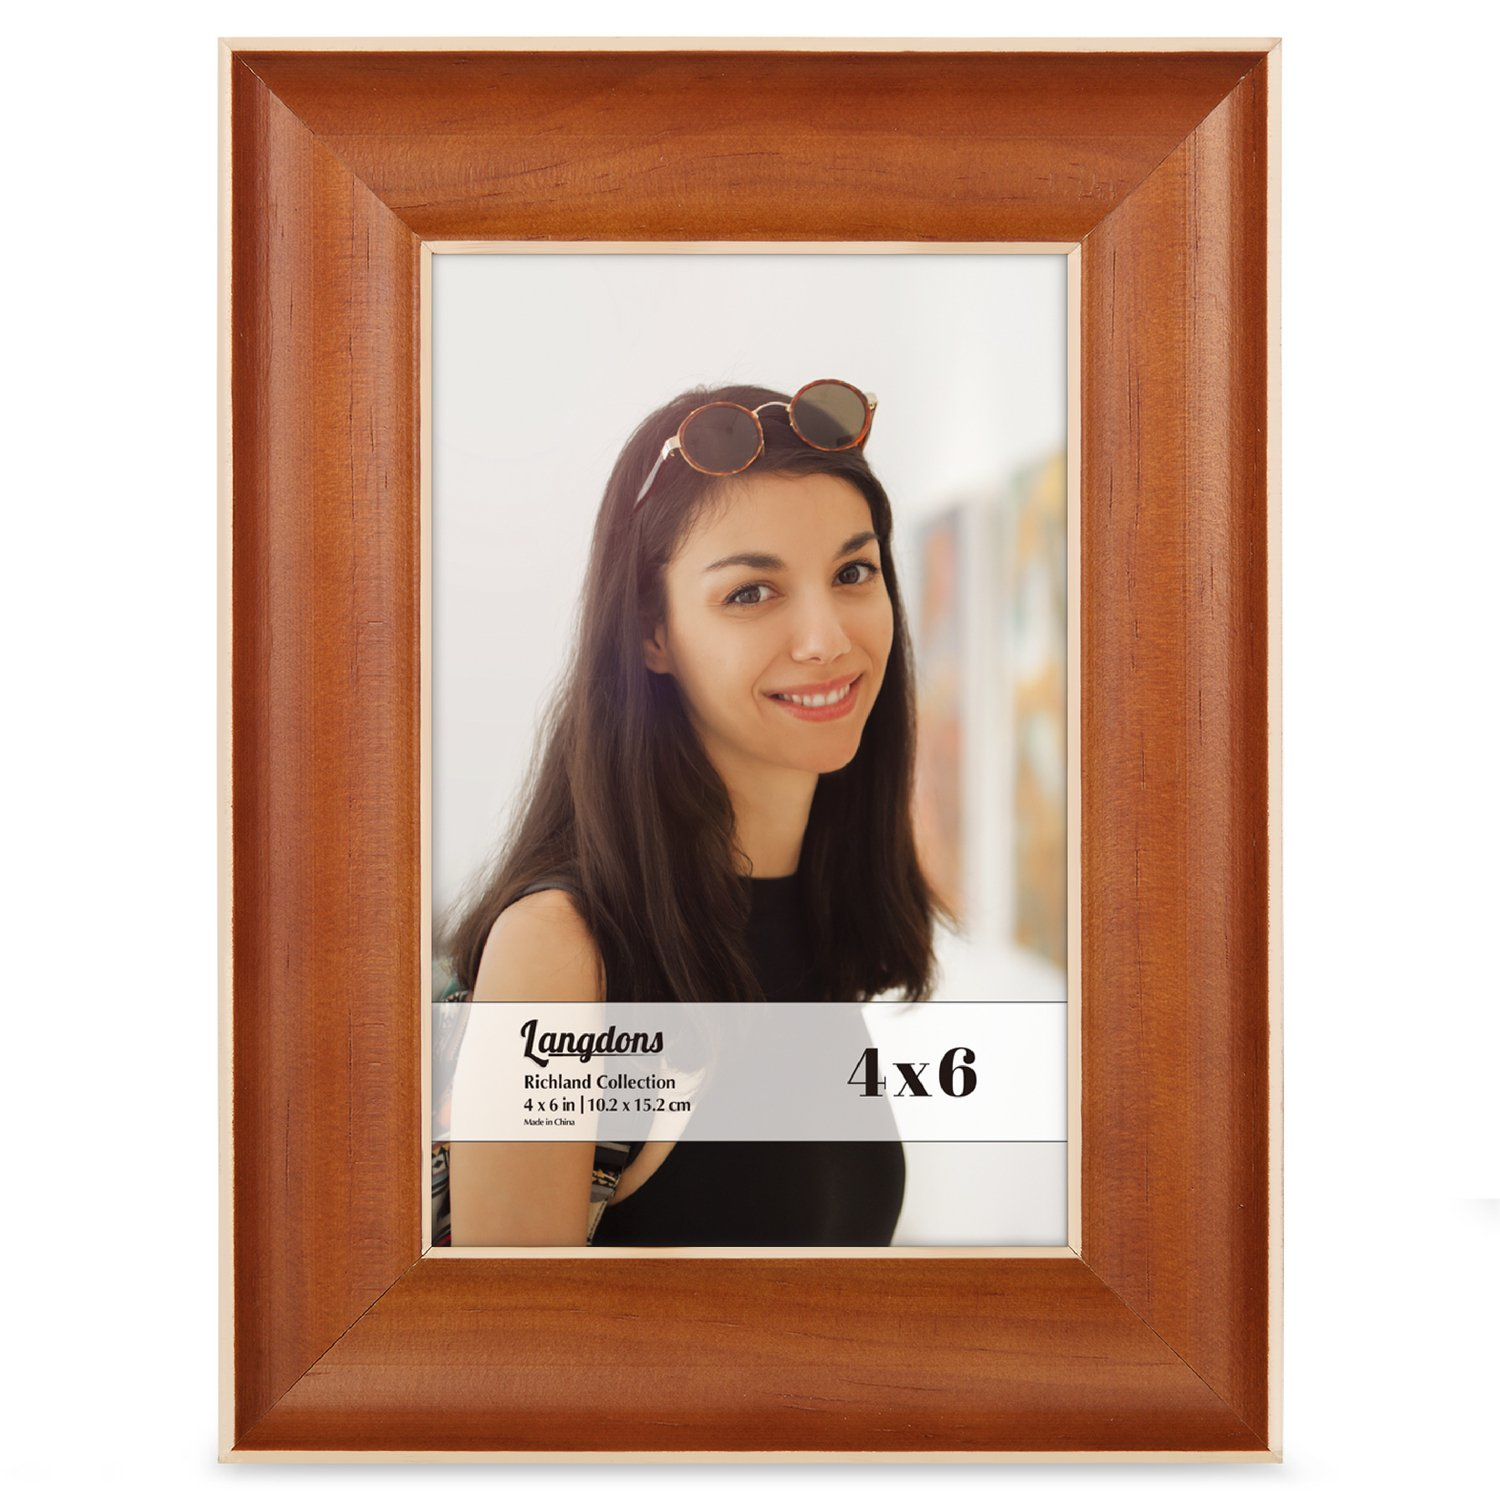 Amazoncom Langdons 4x6 Picture Frame Set 2 Pack Honey Brown